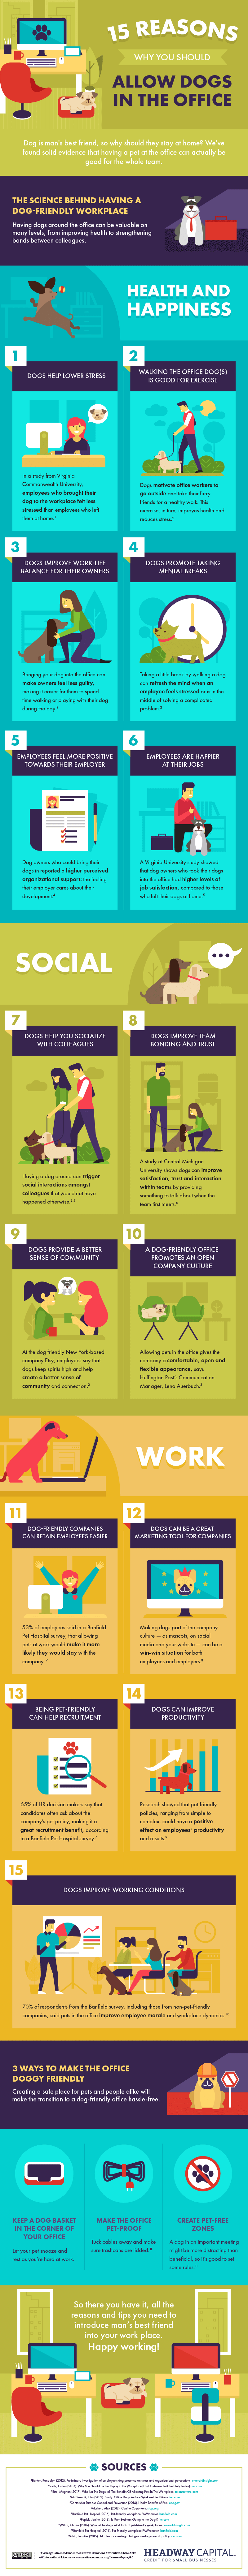 15 Reasons Why You Should Allow Dogs in the Office Infographic